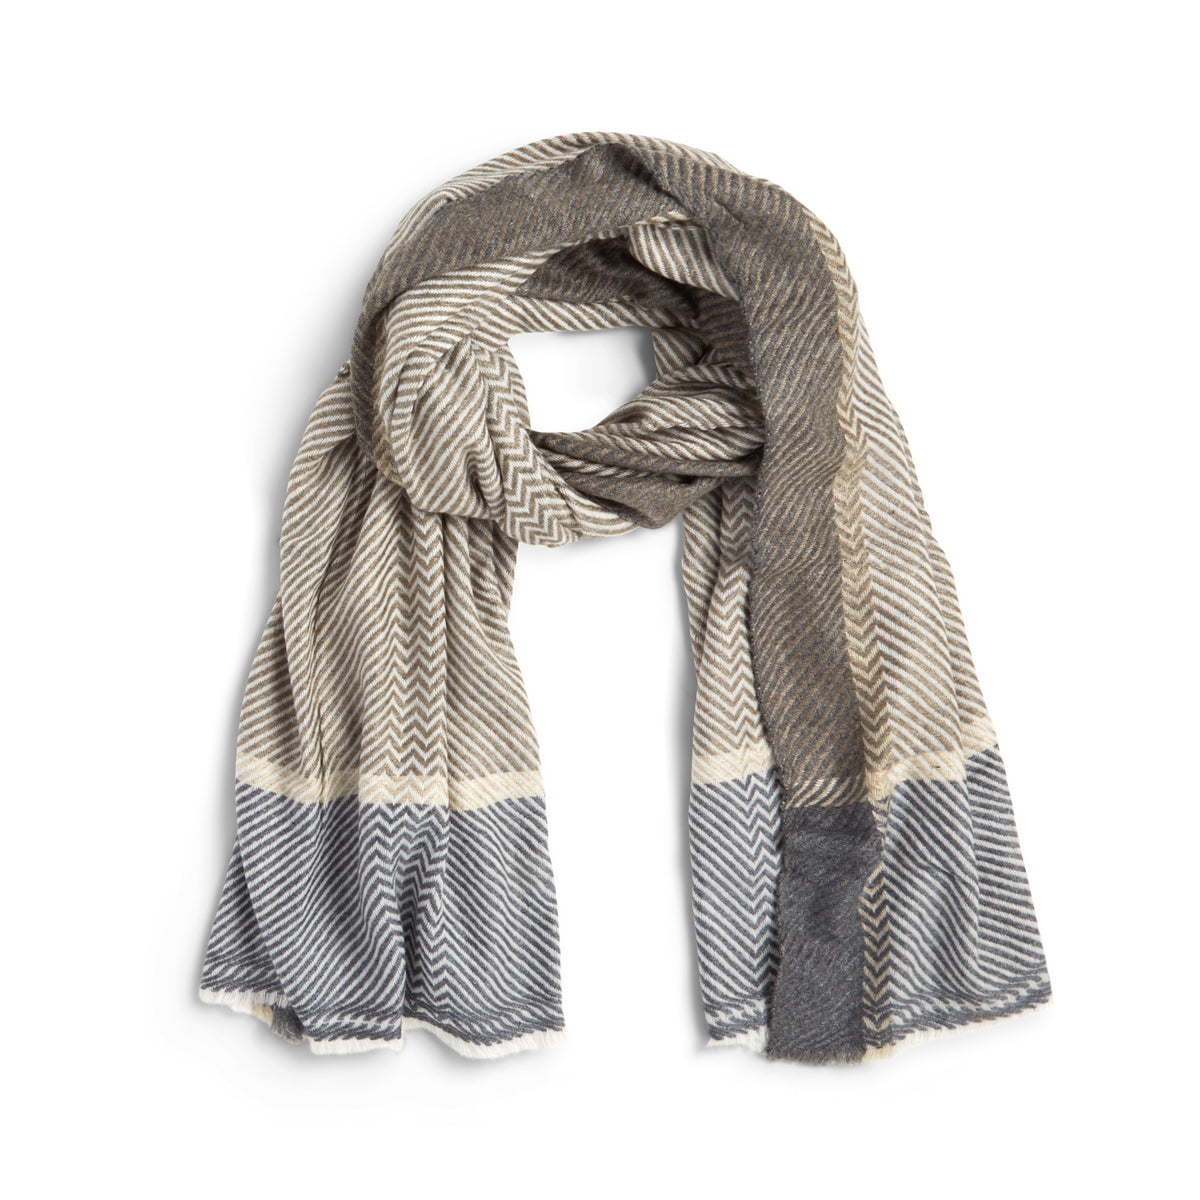 Mixed Cashmere Scarf